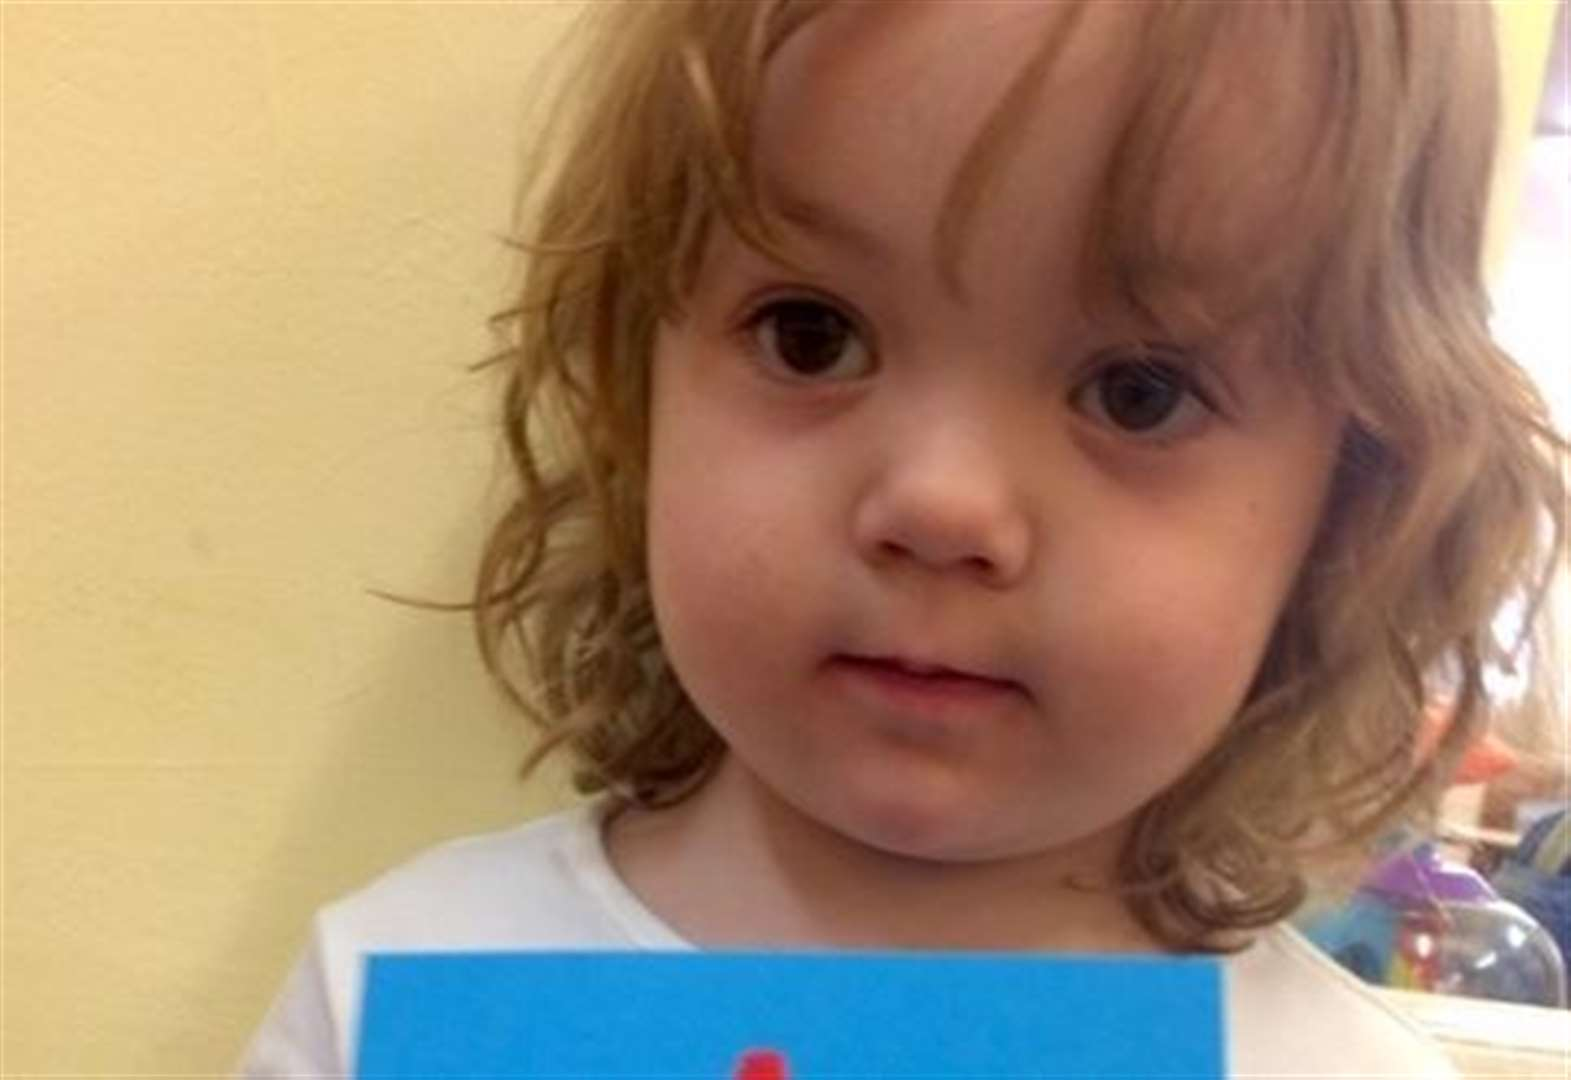 Two-year-old's Christmas card selected as finalist in national competition